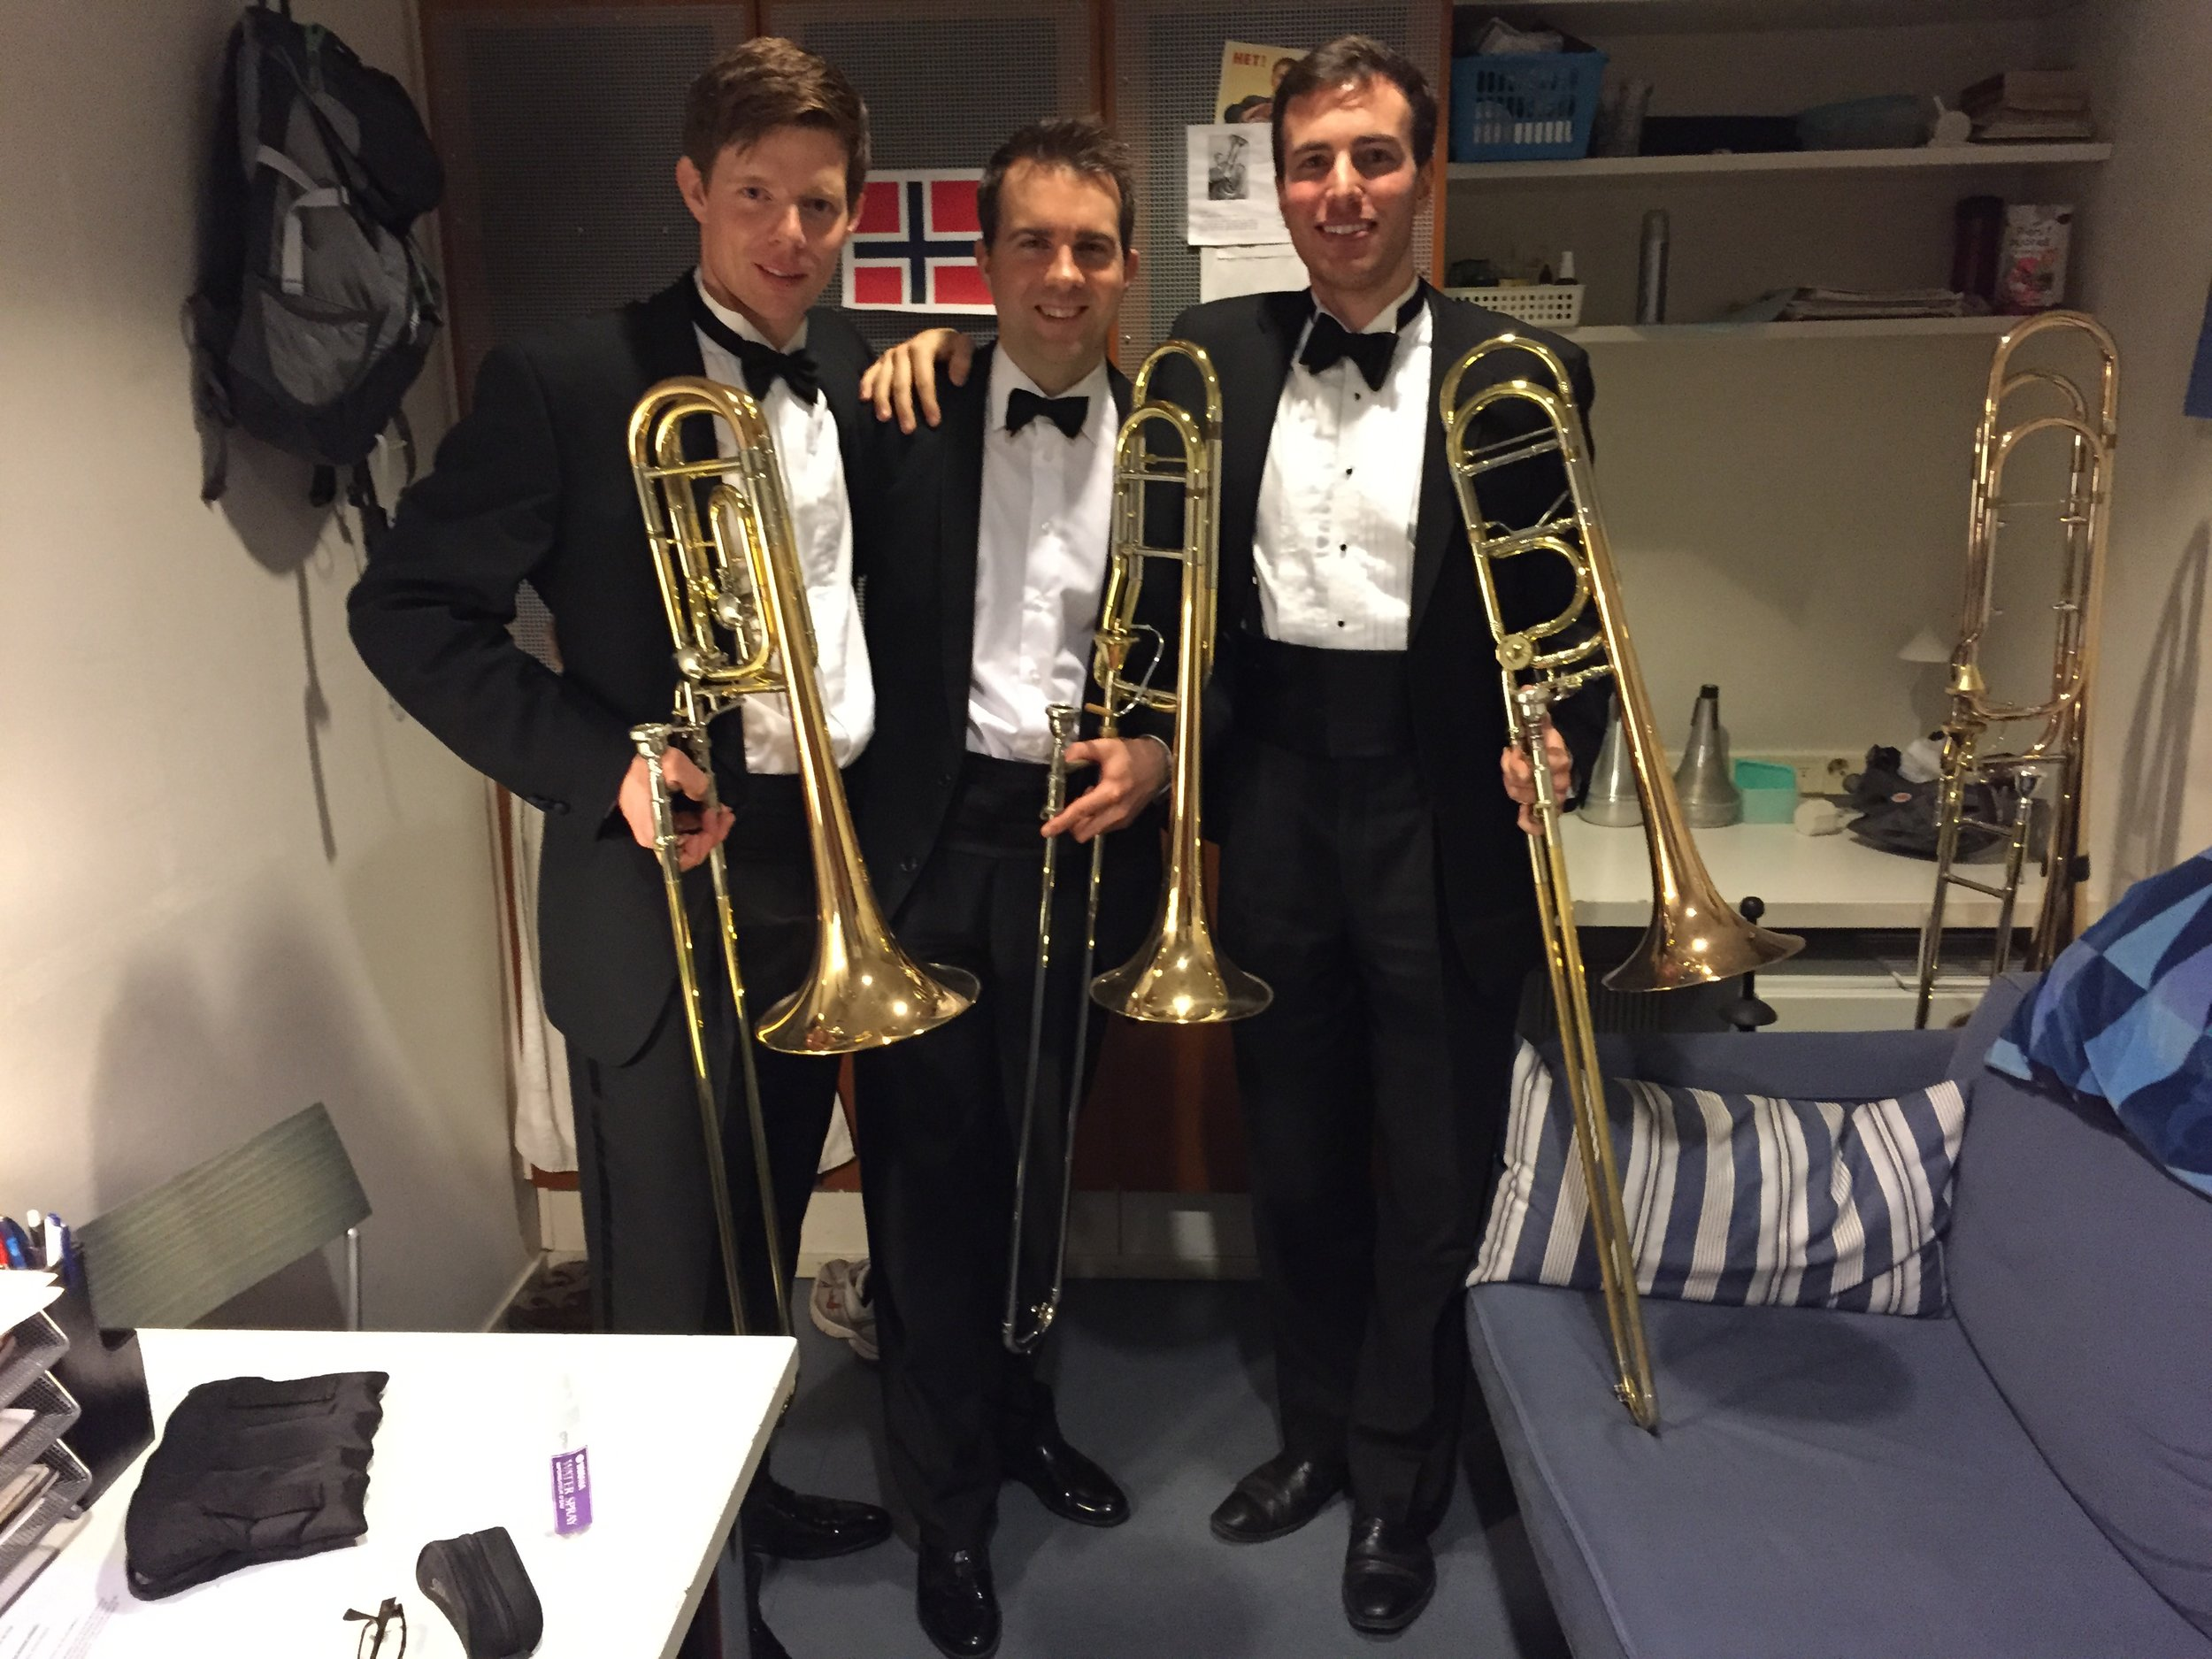 Niklas Larsson and Olav Severeide, after my final performance with the Finnish National Opera